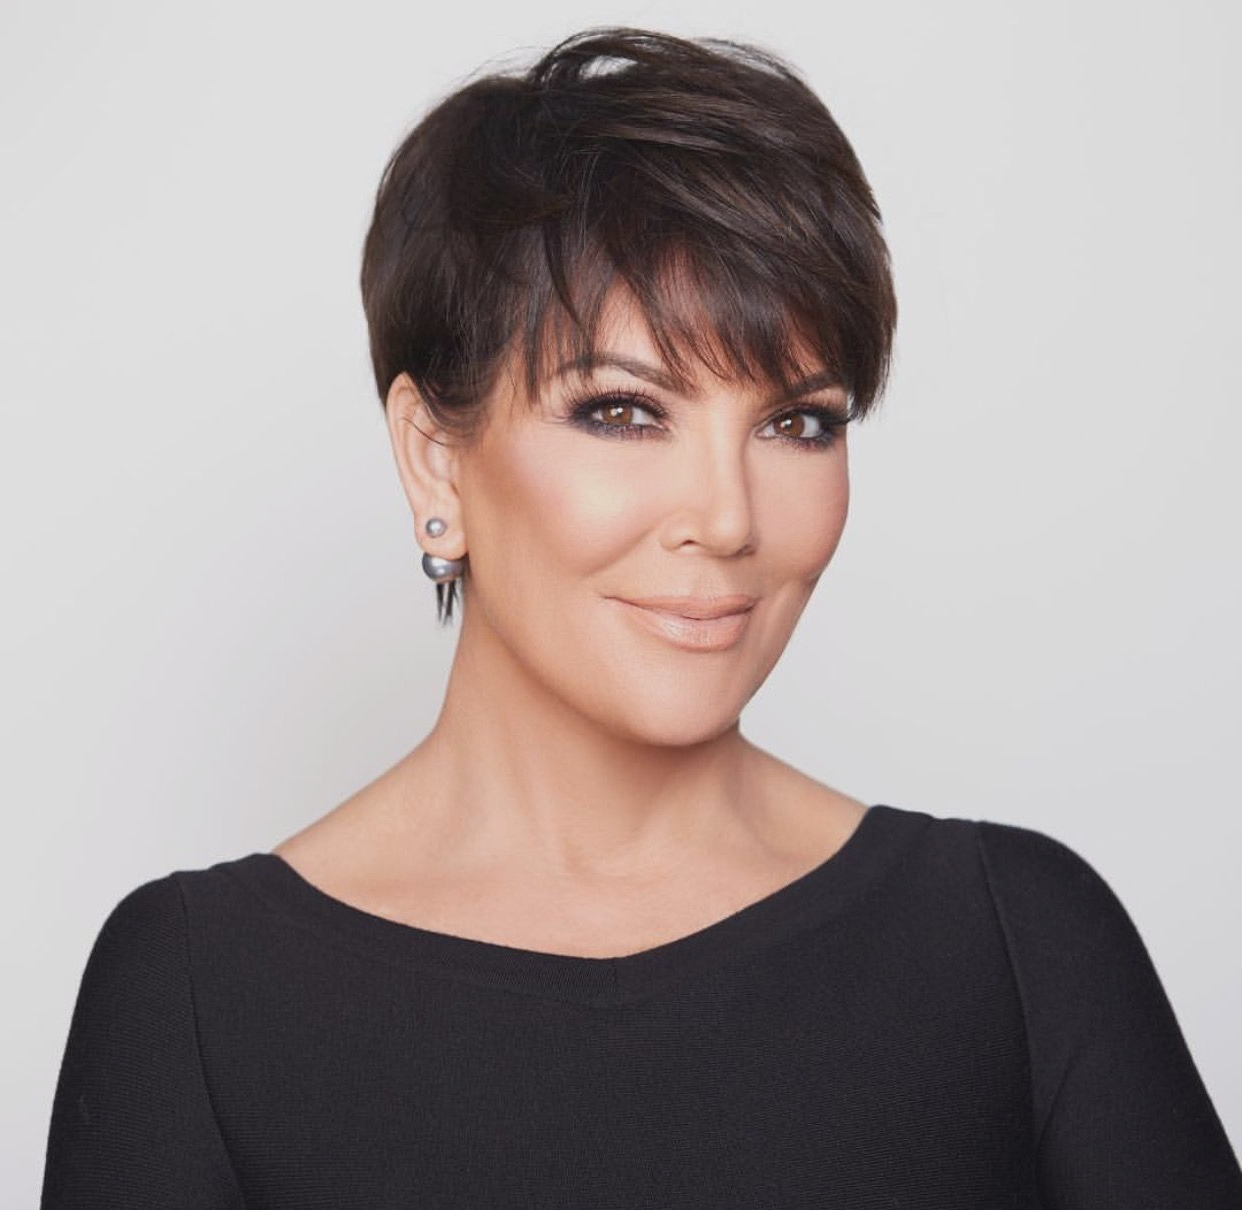 Short Hairstyles : Kris Jenner Short Hairstyle Photos Short Hairstyless With Regard To Kris Jenner Short Hairstyles (View 4 of 25)